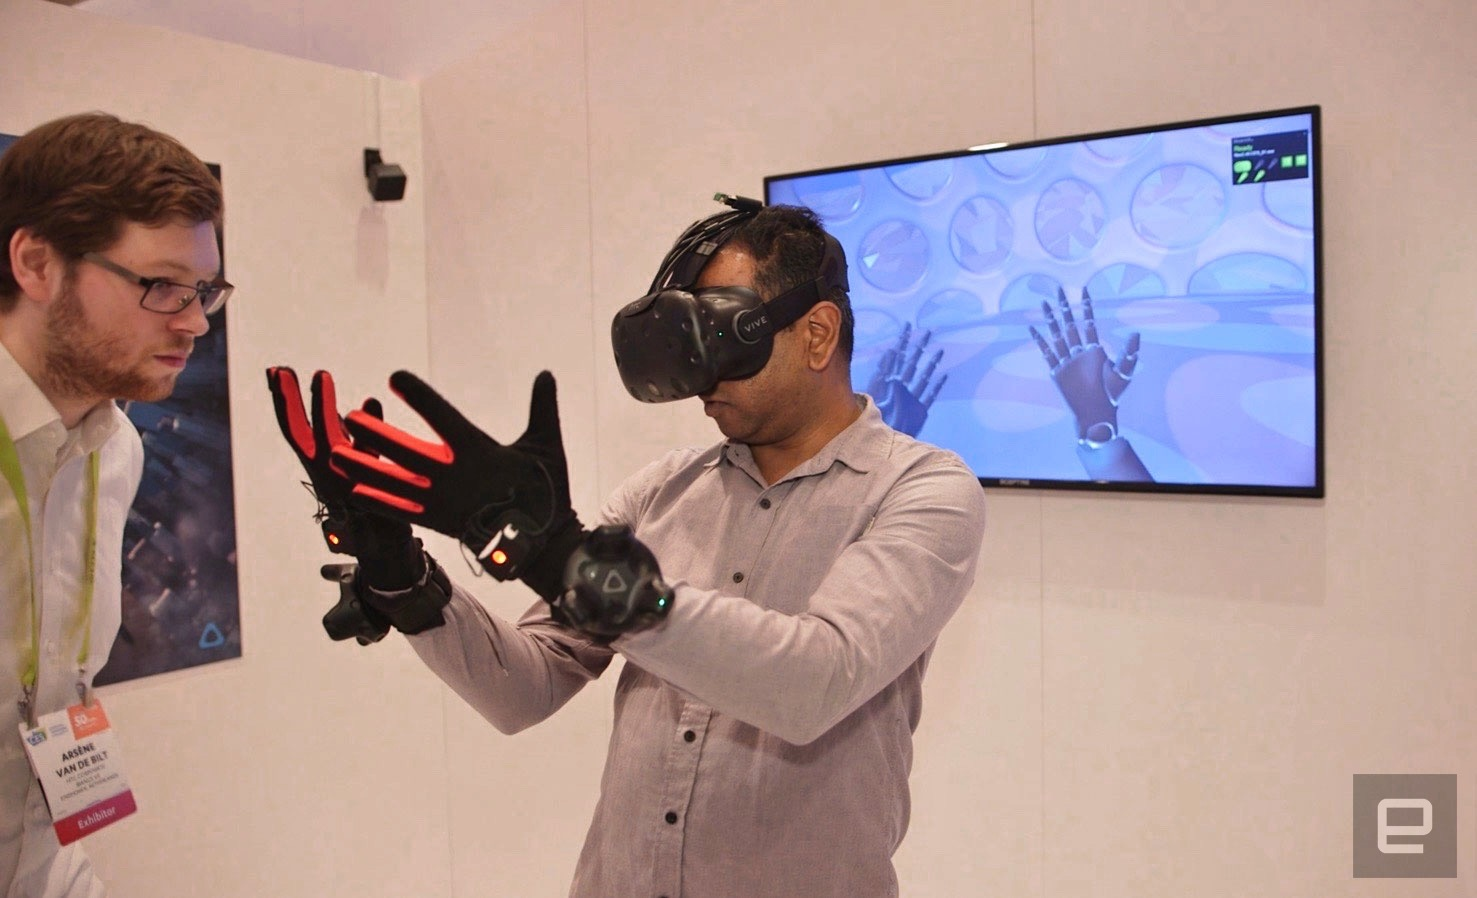 SteamVR Input beta test helps controllers adapt to any VR game